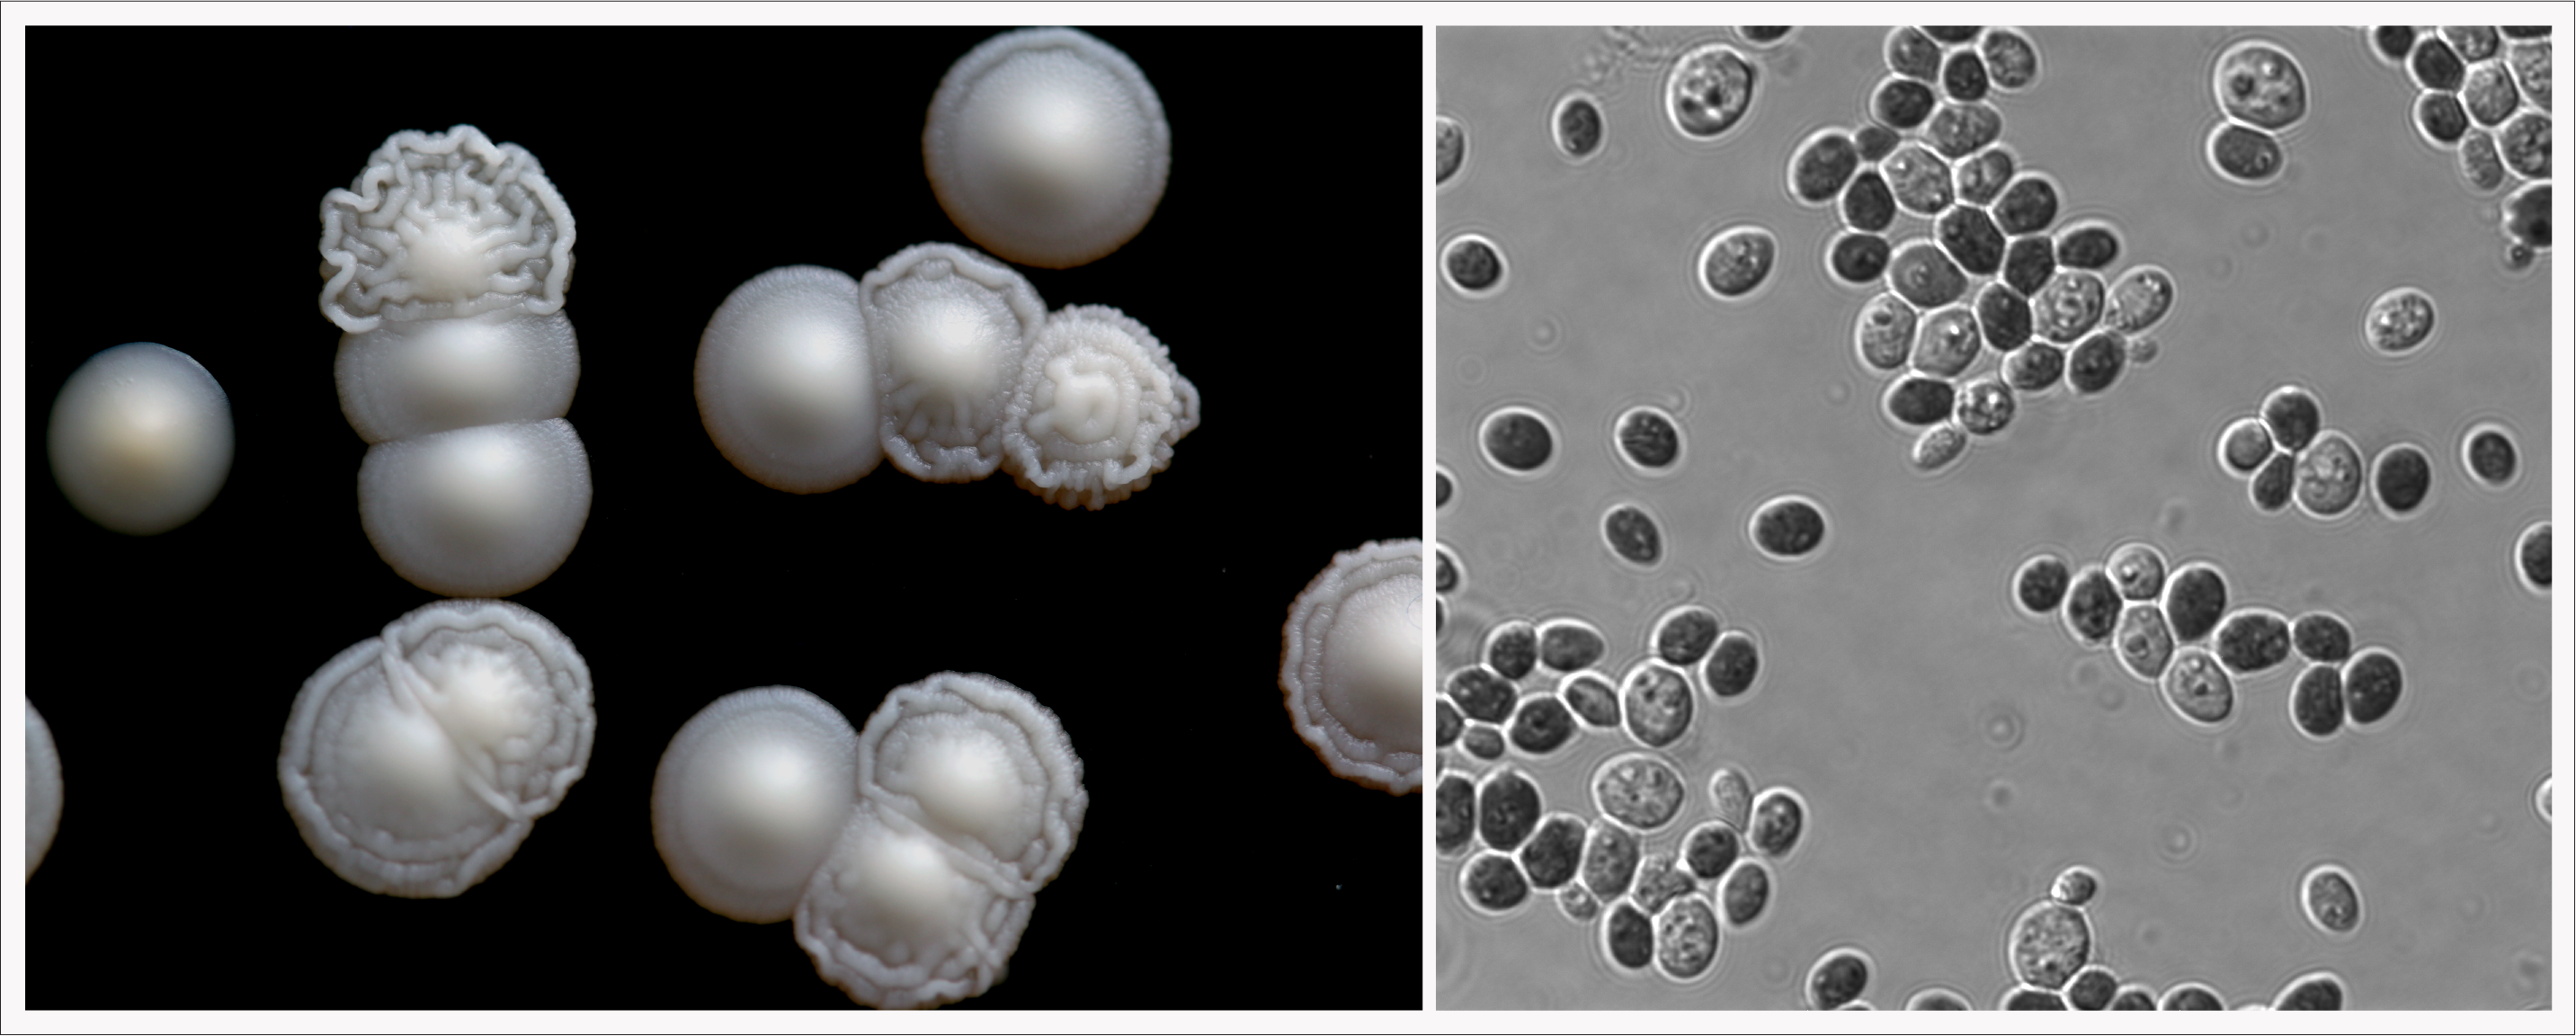 Left: K. humilis is the smallish, pale orange/white colony at the very left (the other colonies are Saccharomyces cerevisiae).  Right: K. humilis cells at magnification.